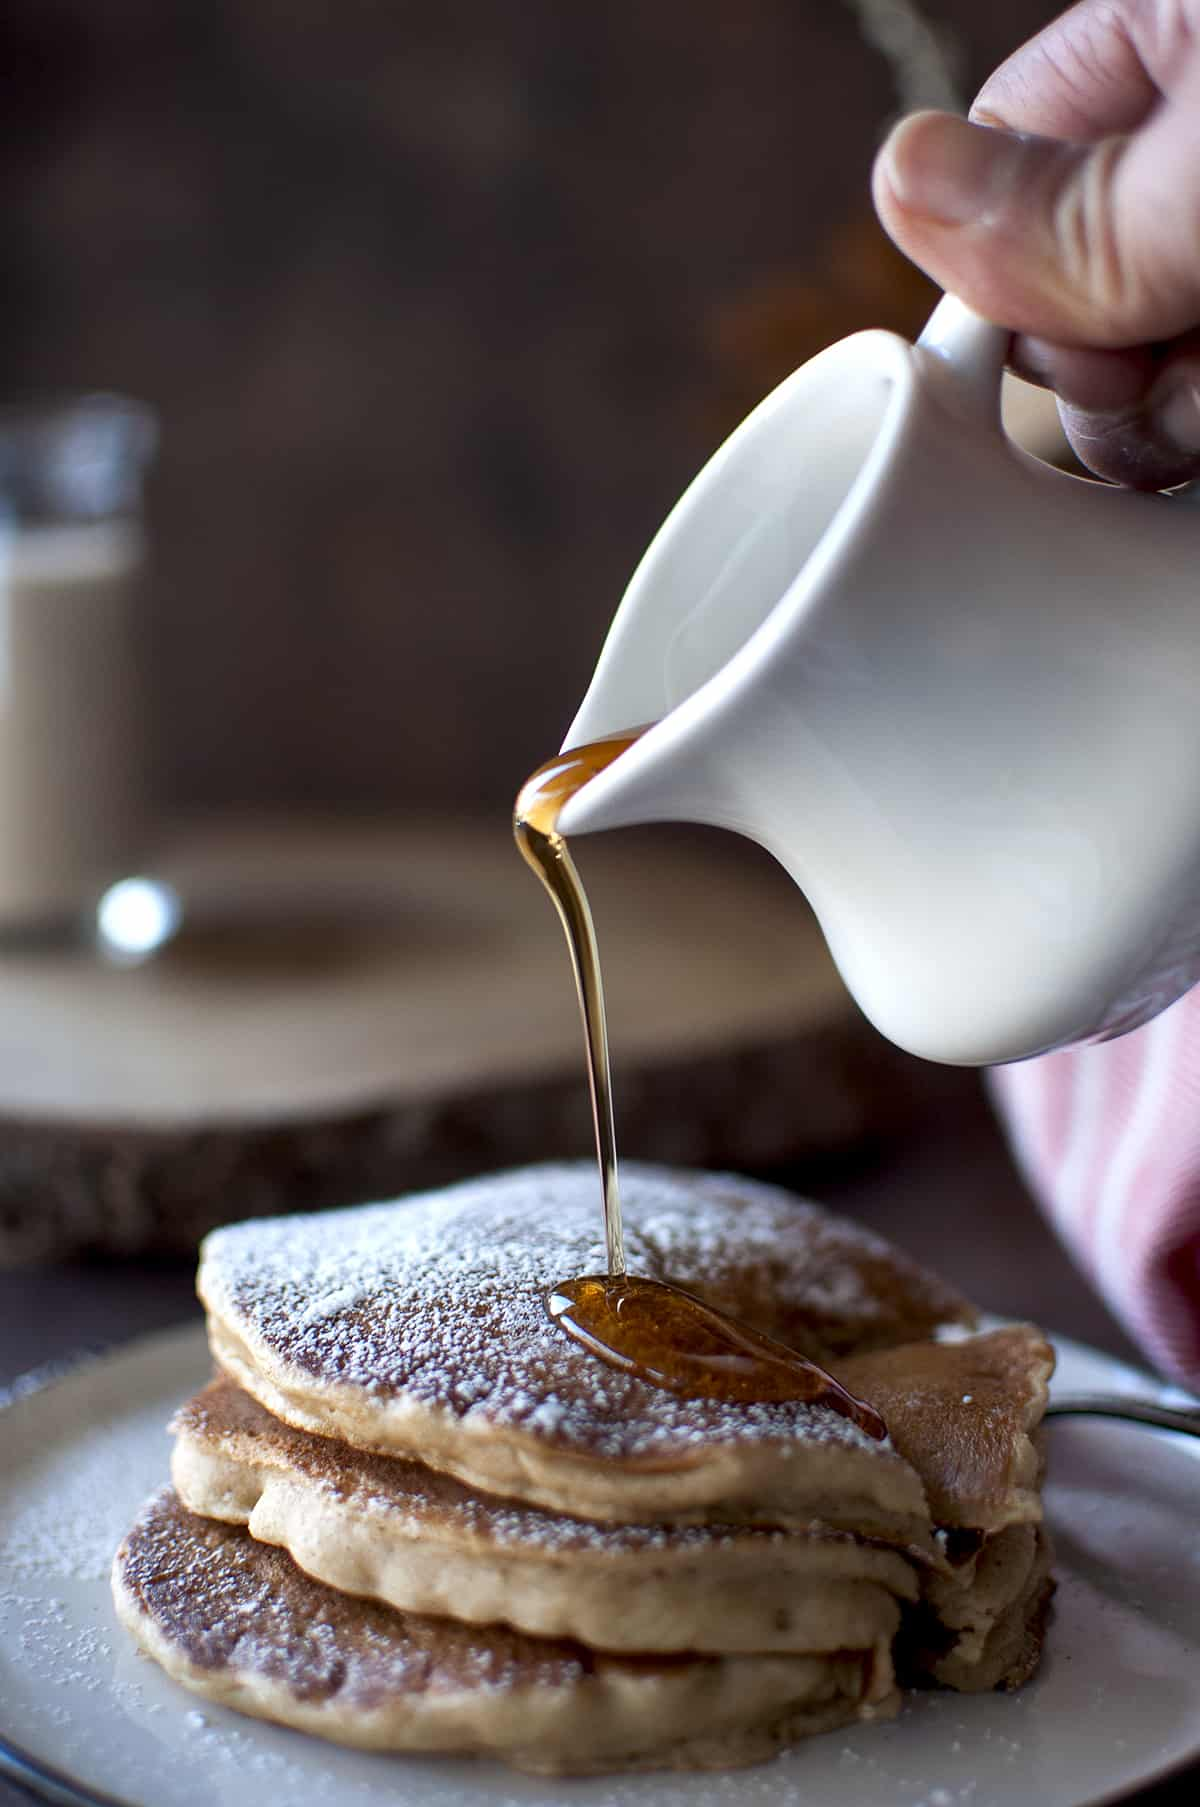 Hand pouring maple syrup on stack of vegan eggnog pancakes